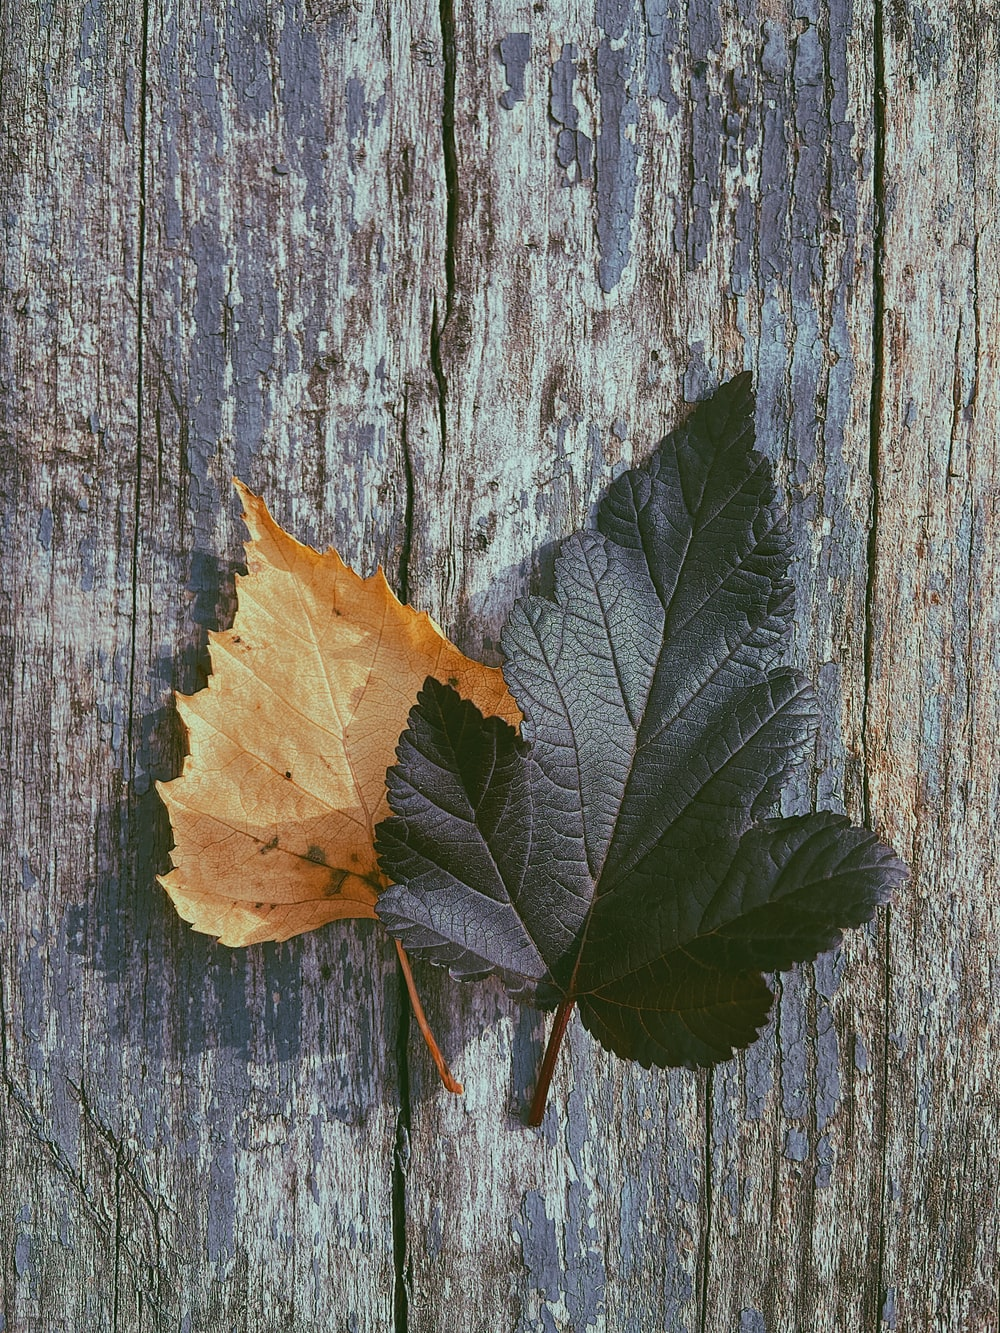 brown maple leaf on gray wooden surface